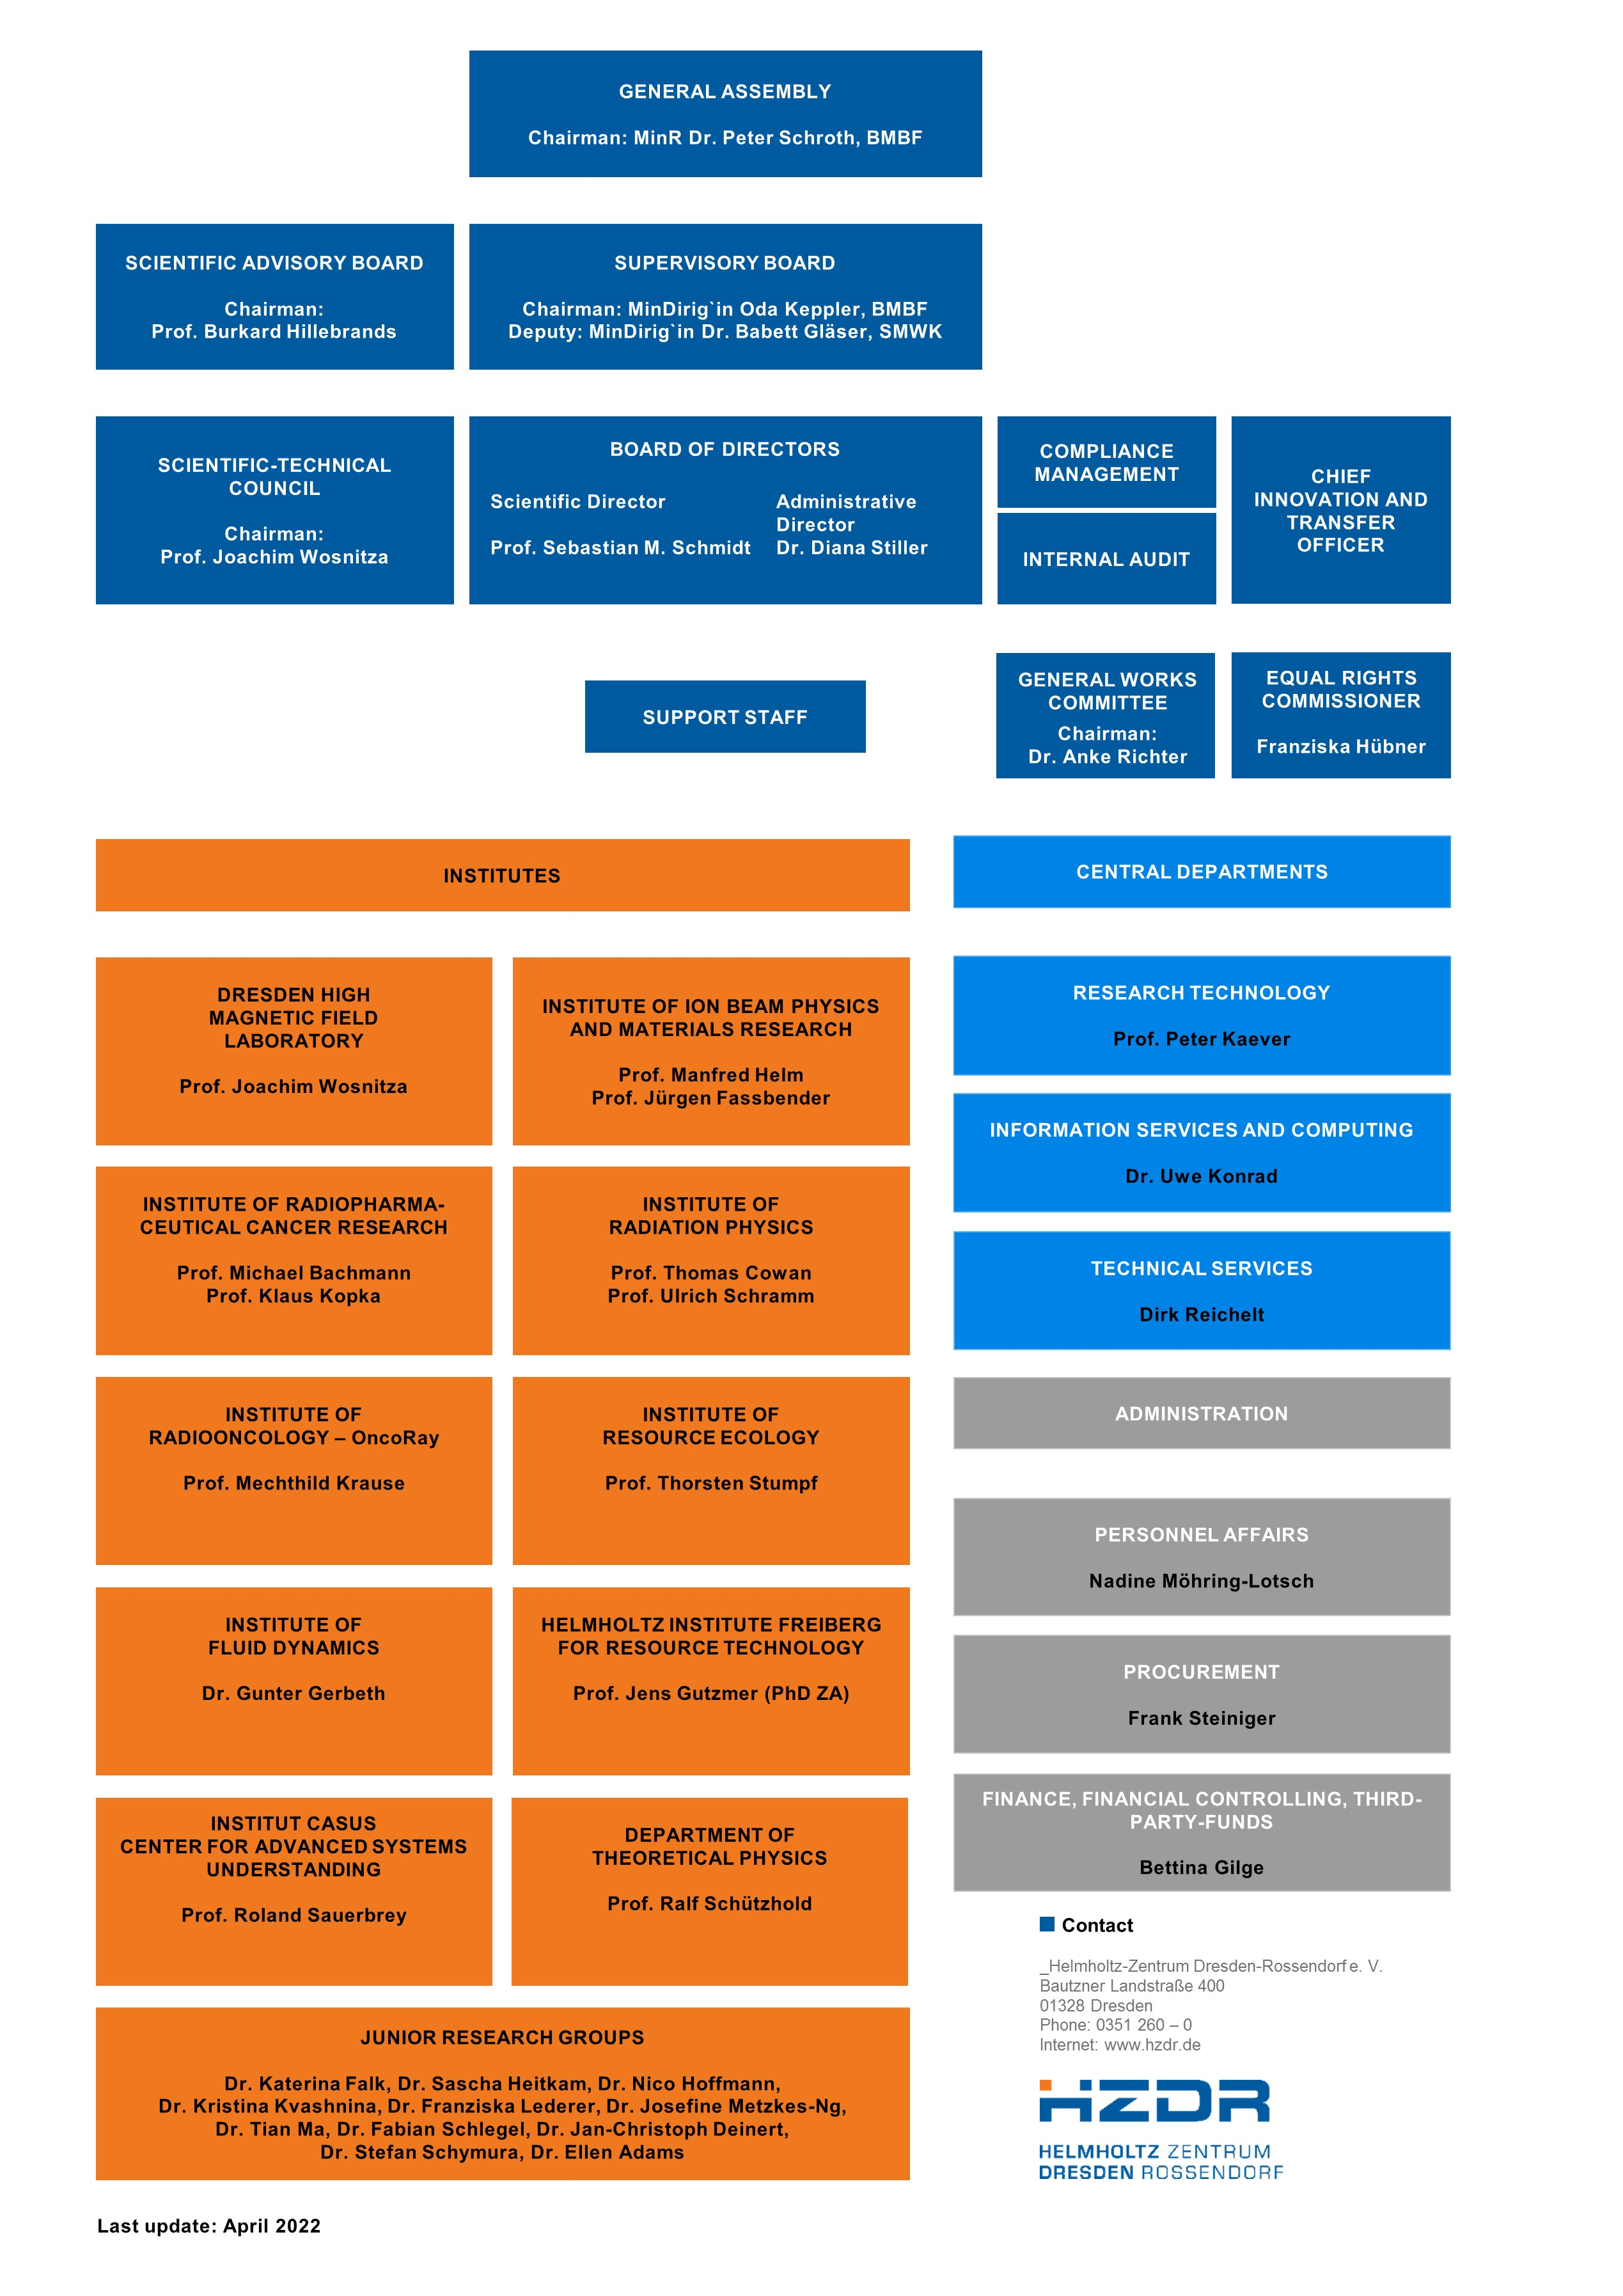 Organisational chart, organisation, board of directors, support staff, institutes, boards, Helmholtz-Zentrum Dresden-Rossendorf